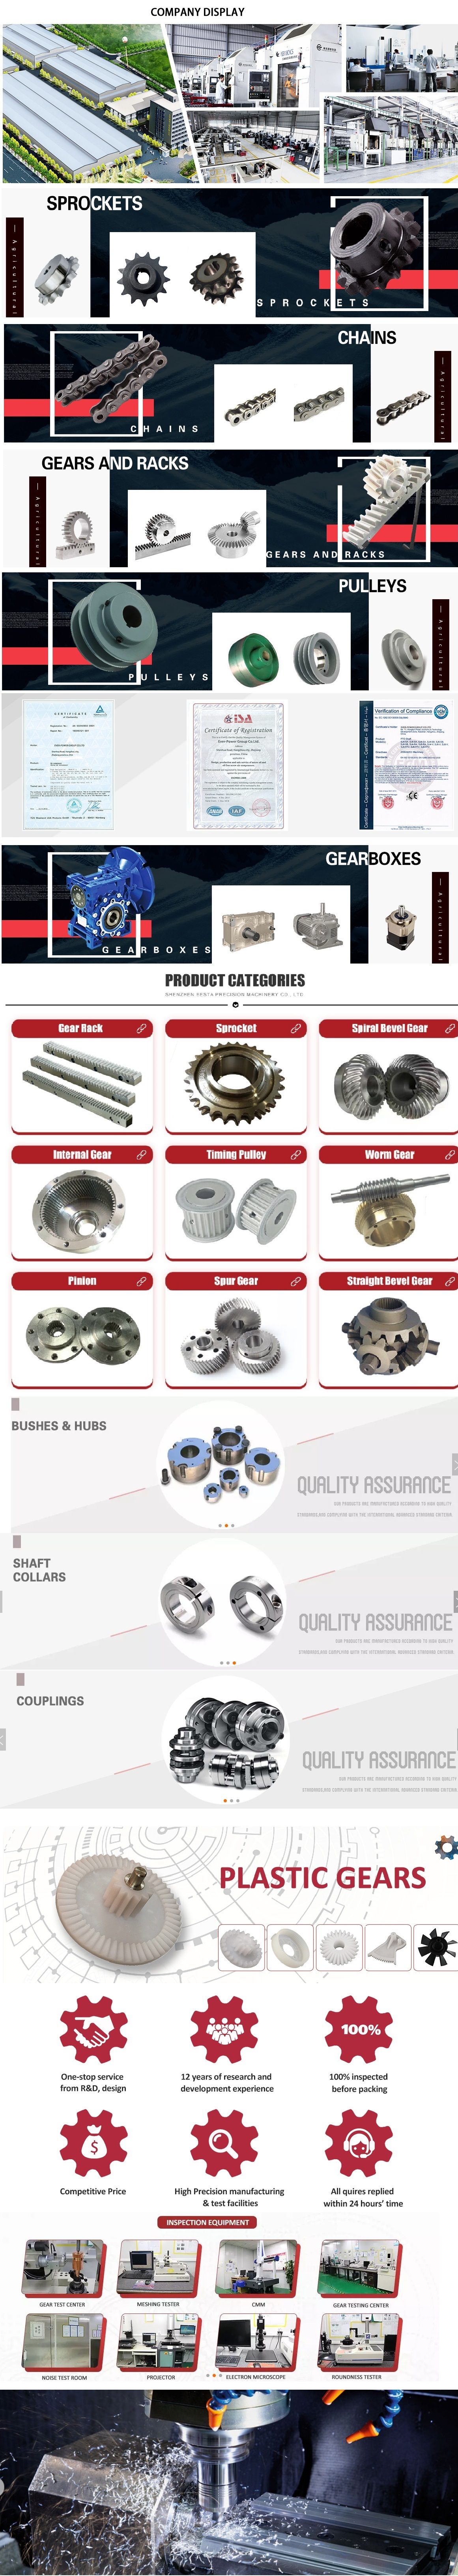 in Ho Chi Minh City Viet Nam  sales   price   shop   near me   near me shop   factory   supplier Non-Standard Powder Metallurgy Chain Sprockets for Automobile manufacturer   best   Cost   Custom   Cheap   wholesaler